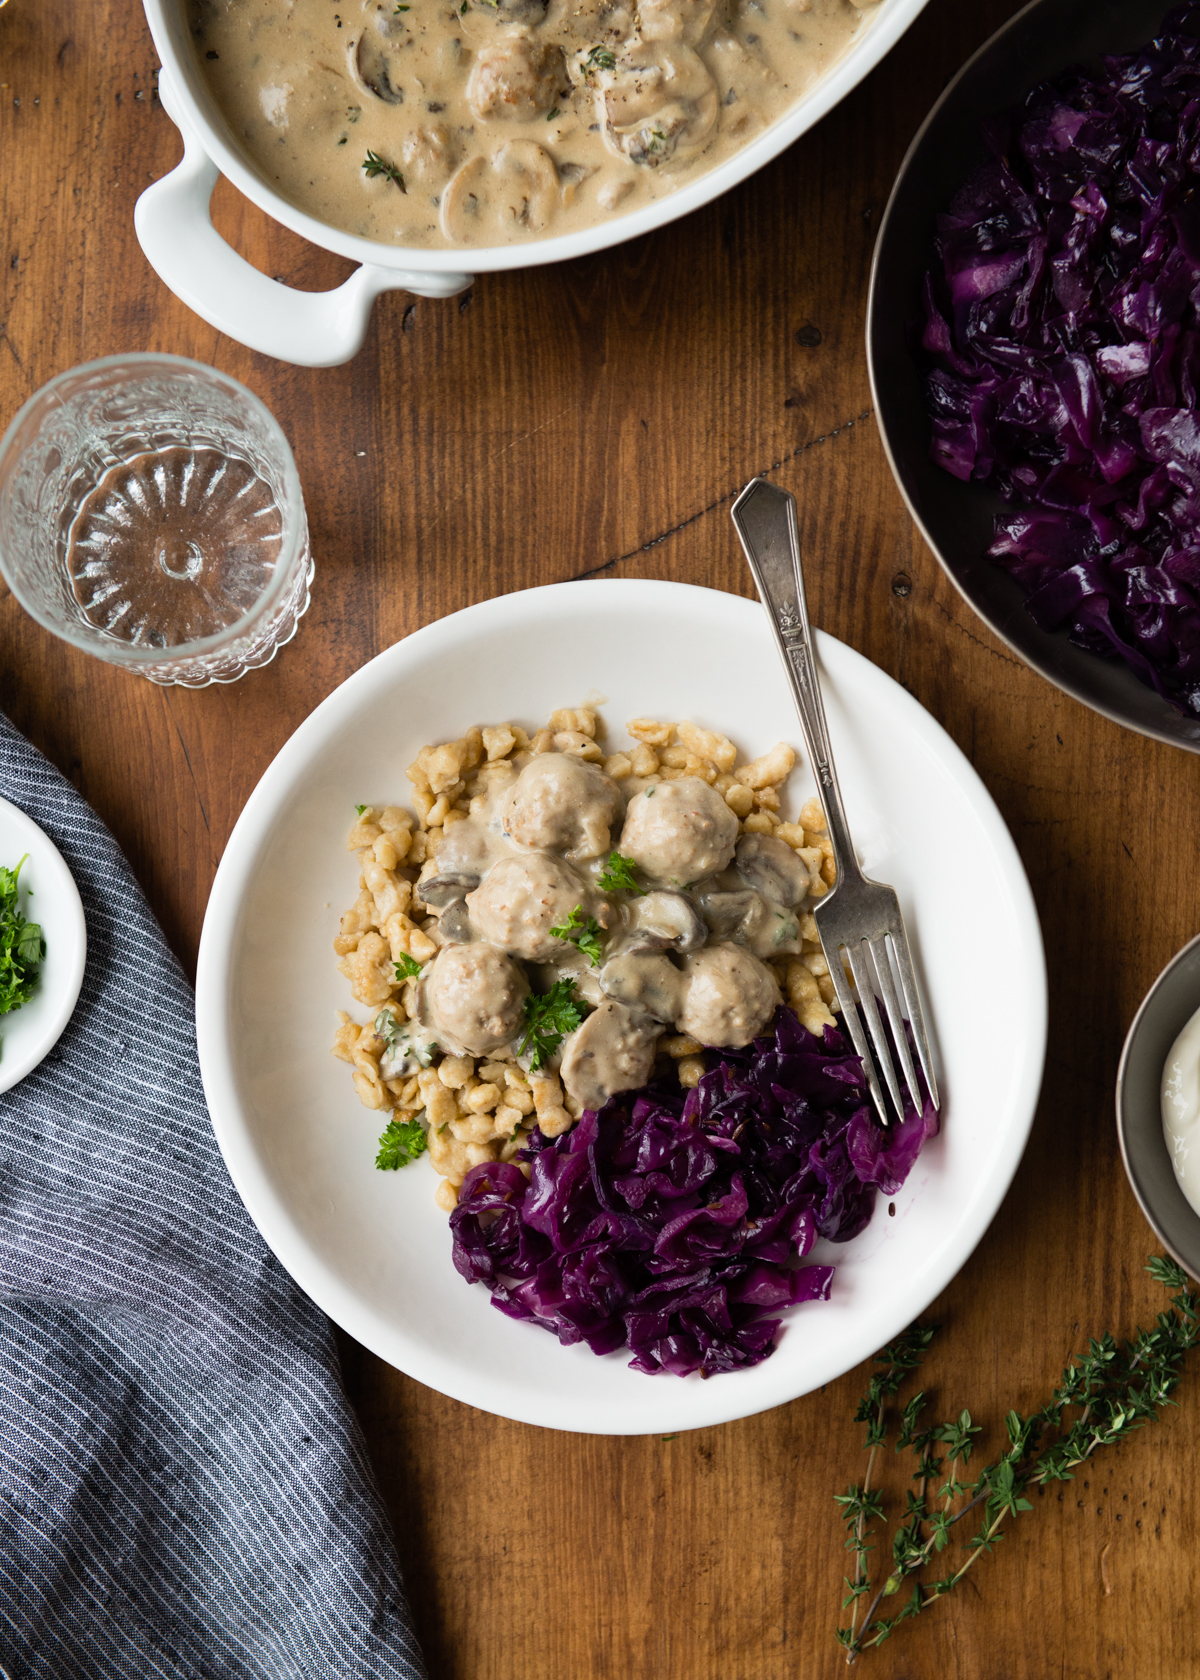 Meatball Stroganoff with Braised Red Cabbage and Spaetzle